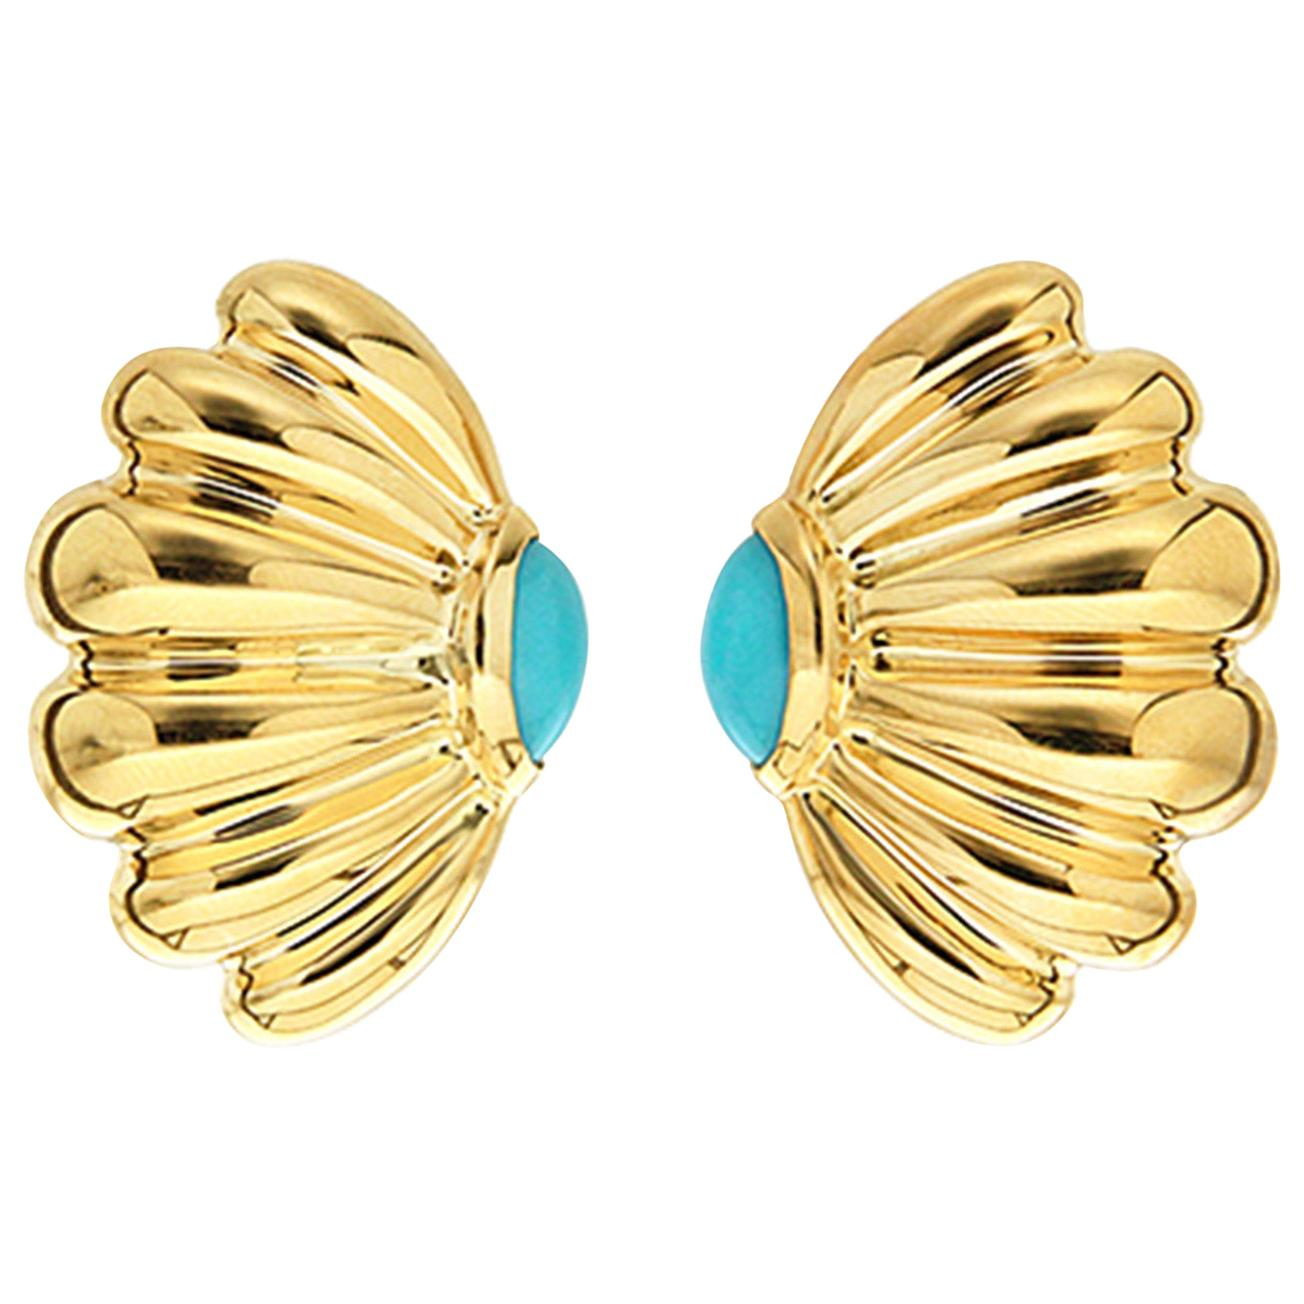 Valentin Magro Turquoise Cabochon Gold Sea Fan Earrings Emulate Soft Coral